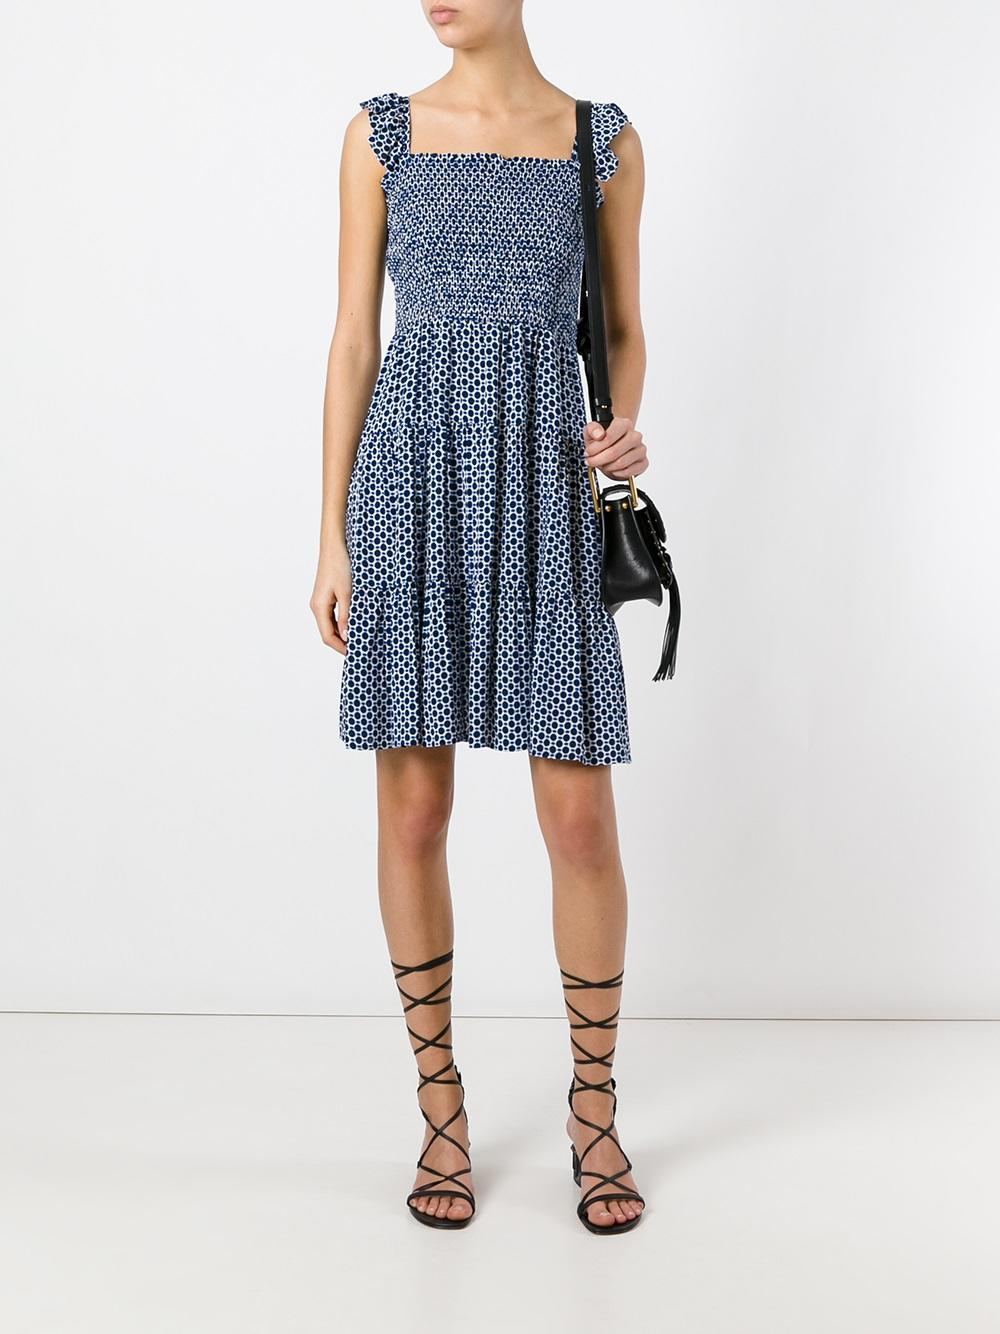 Lyst tory burch printed tier dress in blue for Tory burch fashion island